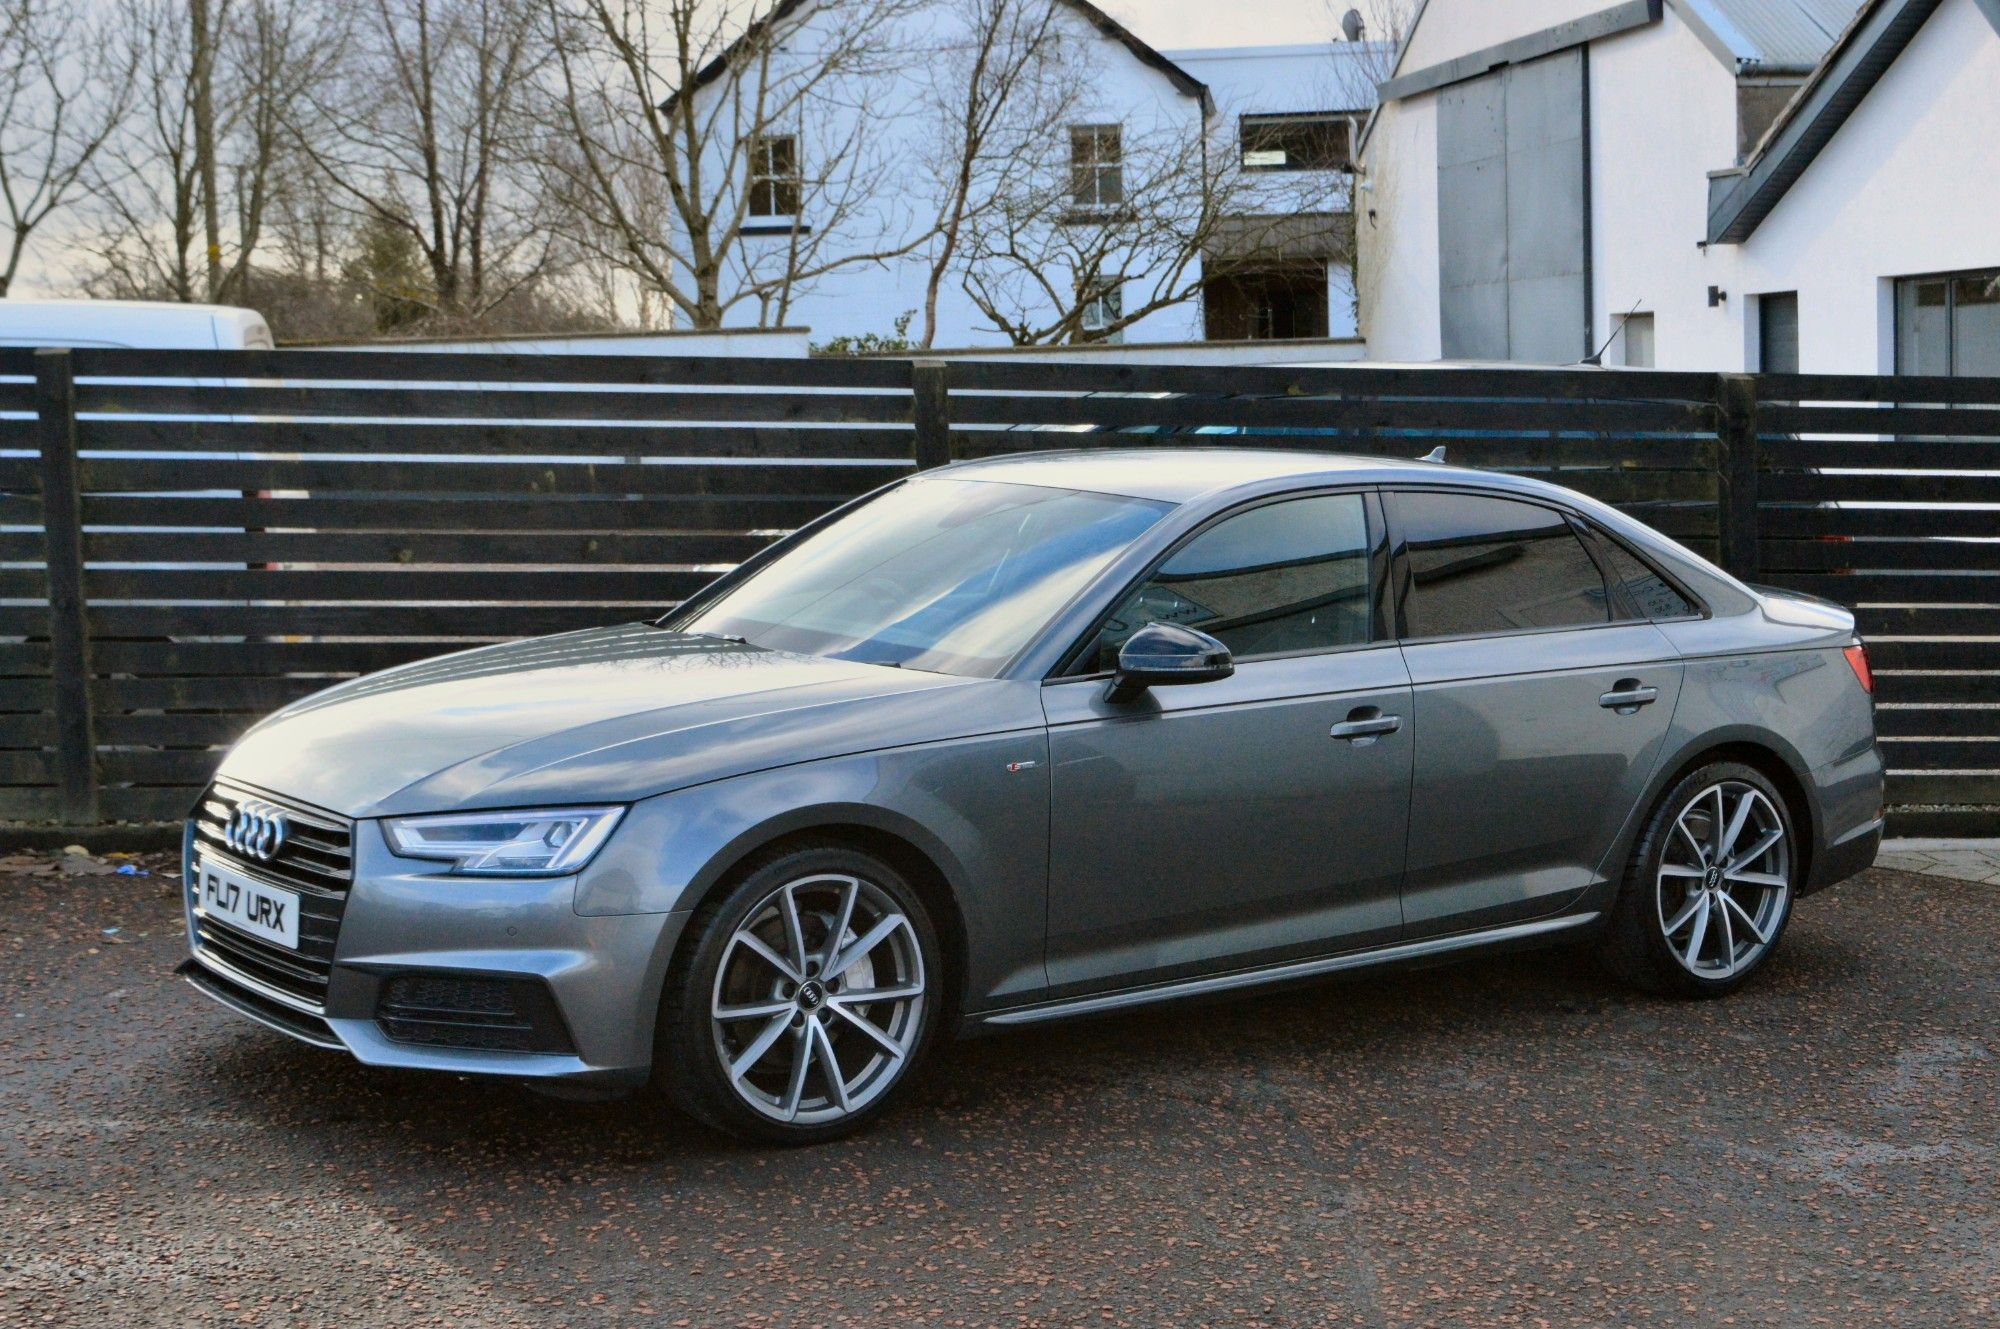 USED 2017 17 AUDI A4 2.0 TDI S LINE 4d 188 BHP 6 MONTHS RAC WARRANTY FREE + 12 MONTHS ROAD SIDE RECOVERY!